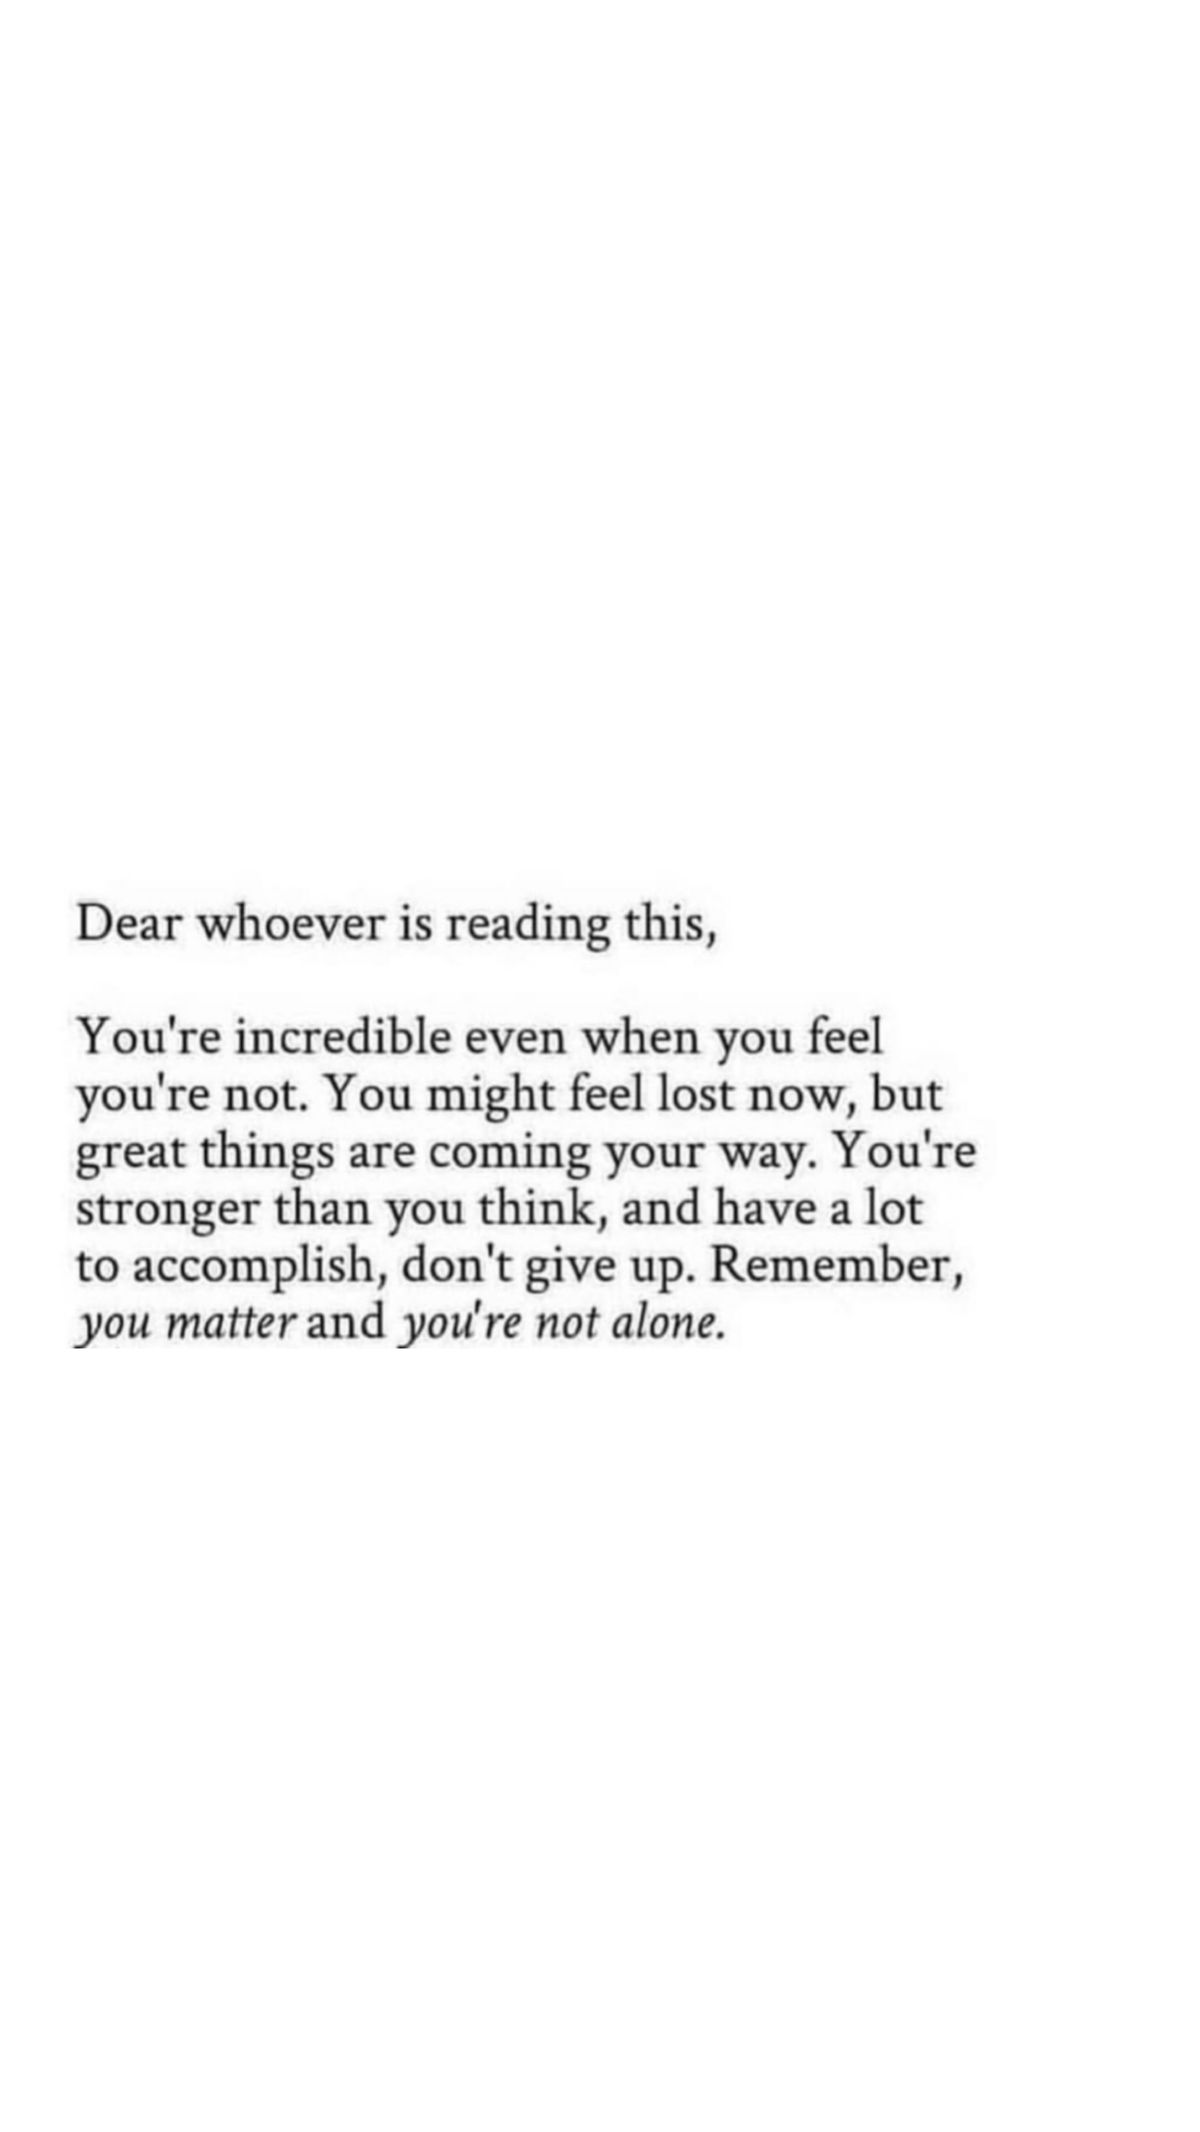 You are Incredible.